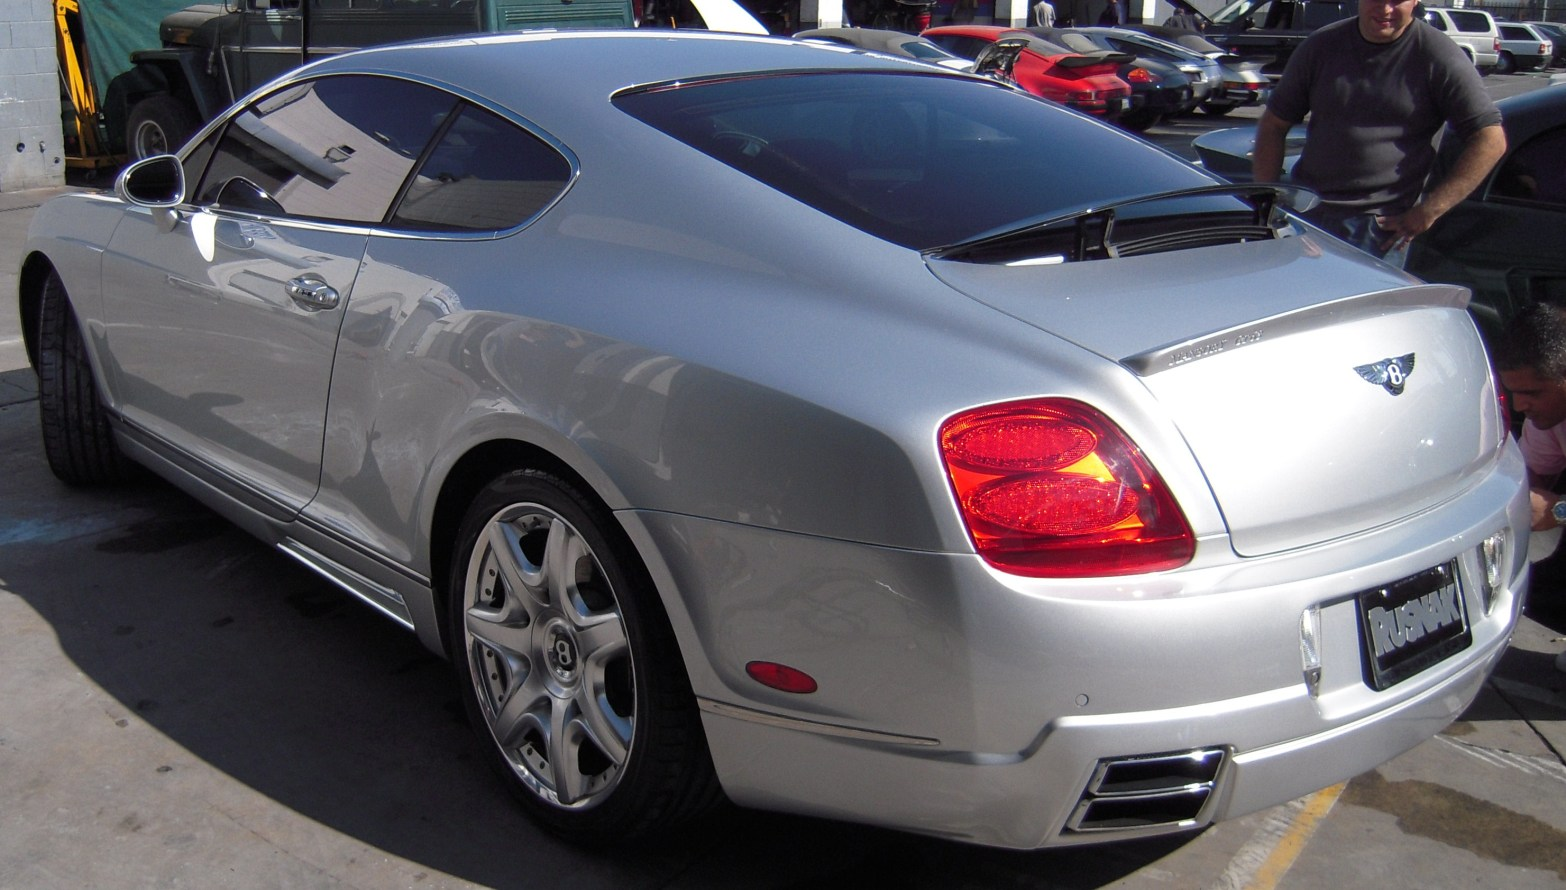 west-coast-body-and-paint-gray-bentley-8